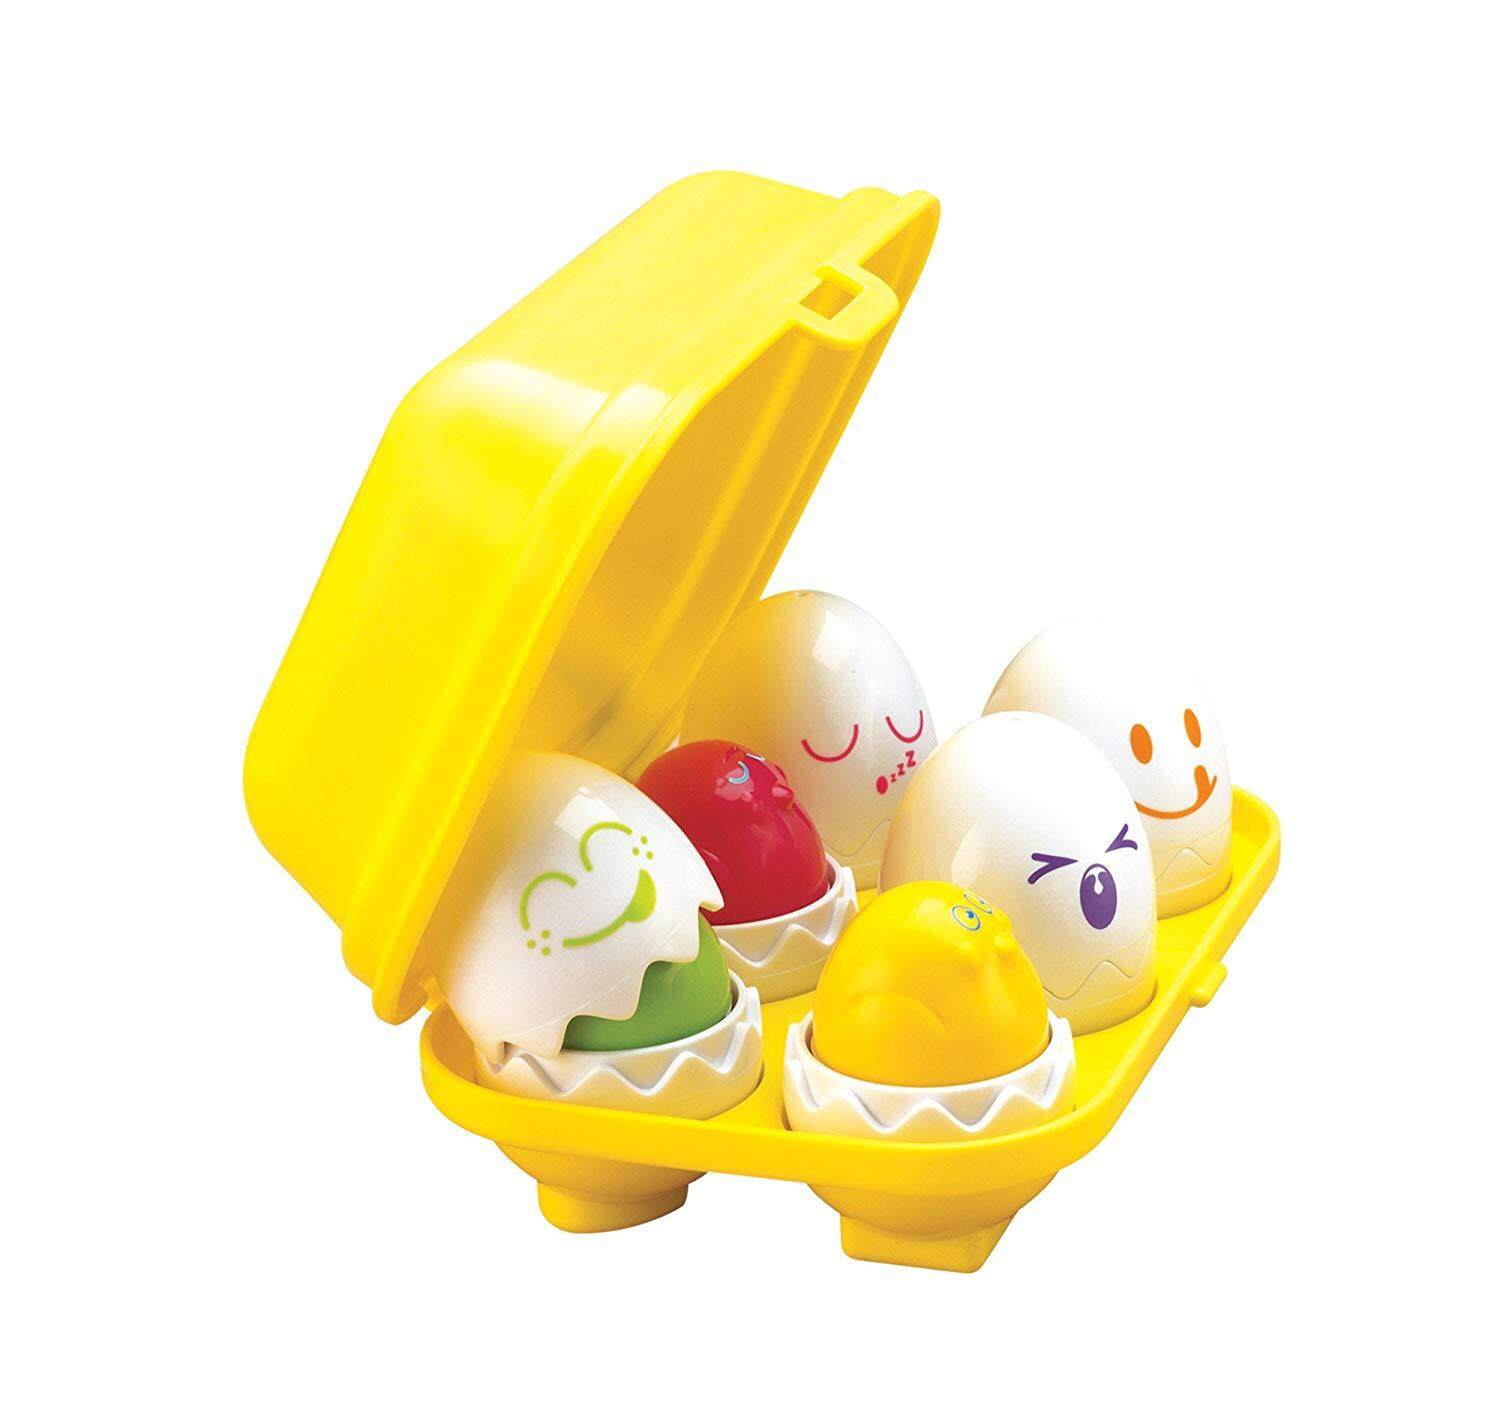 TOMY Toomies Hide & Squeak Eggs  Matching & Sorting Learning Toys  Kids Egg Squeak Toy  Ages 6 months & up